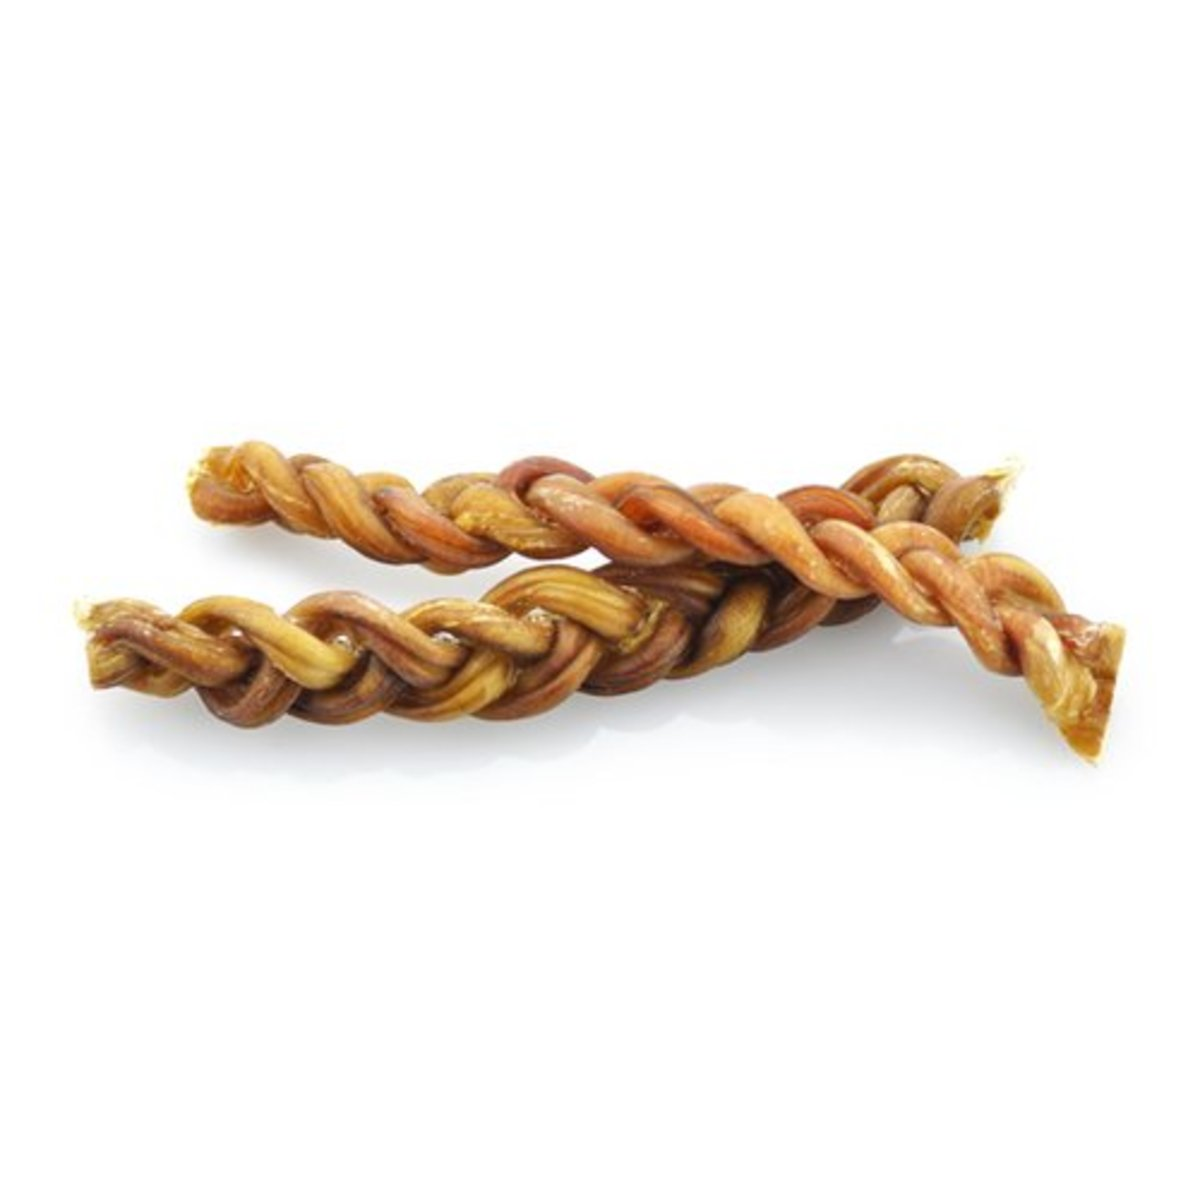 Braided Bully Stick include 3 sticks wound together.